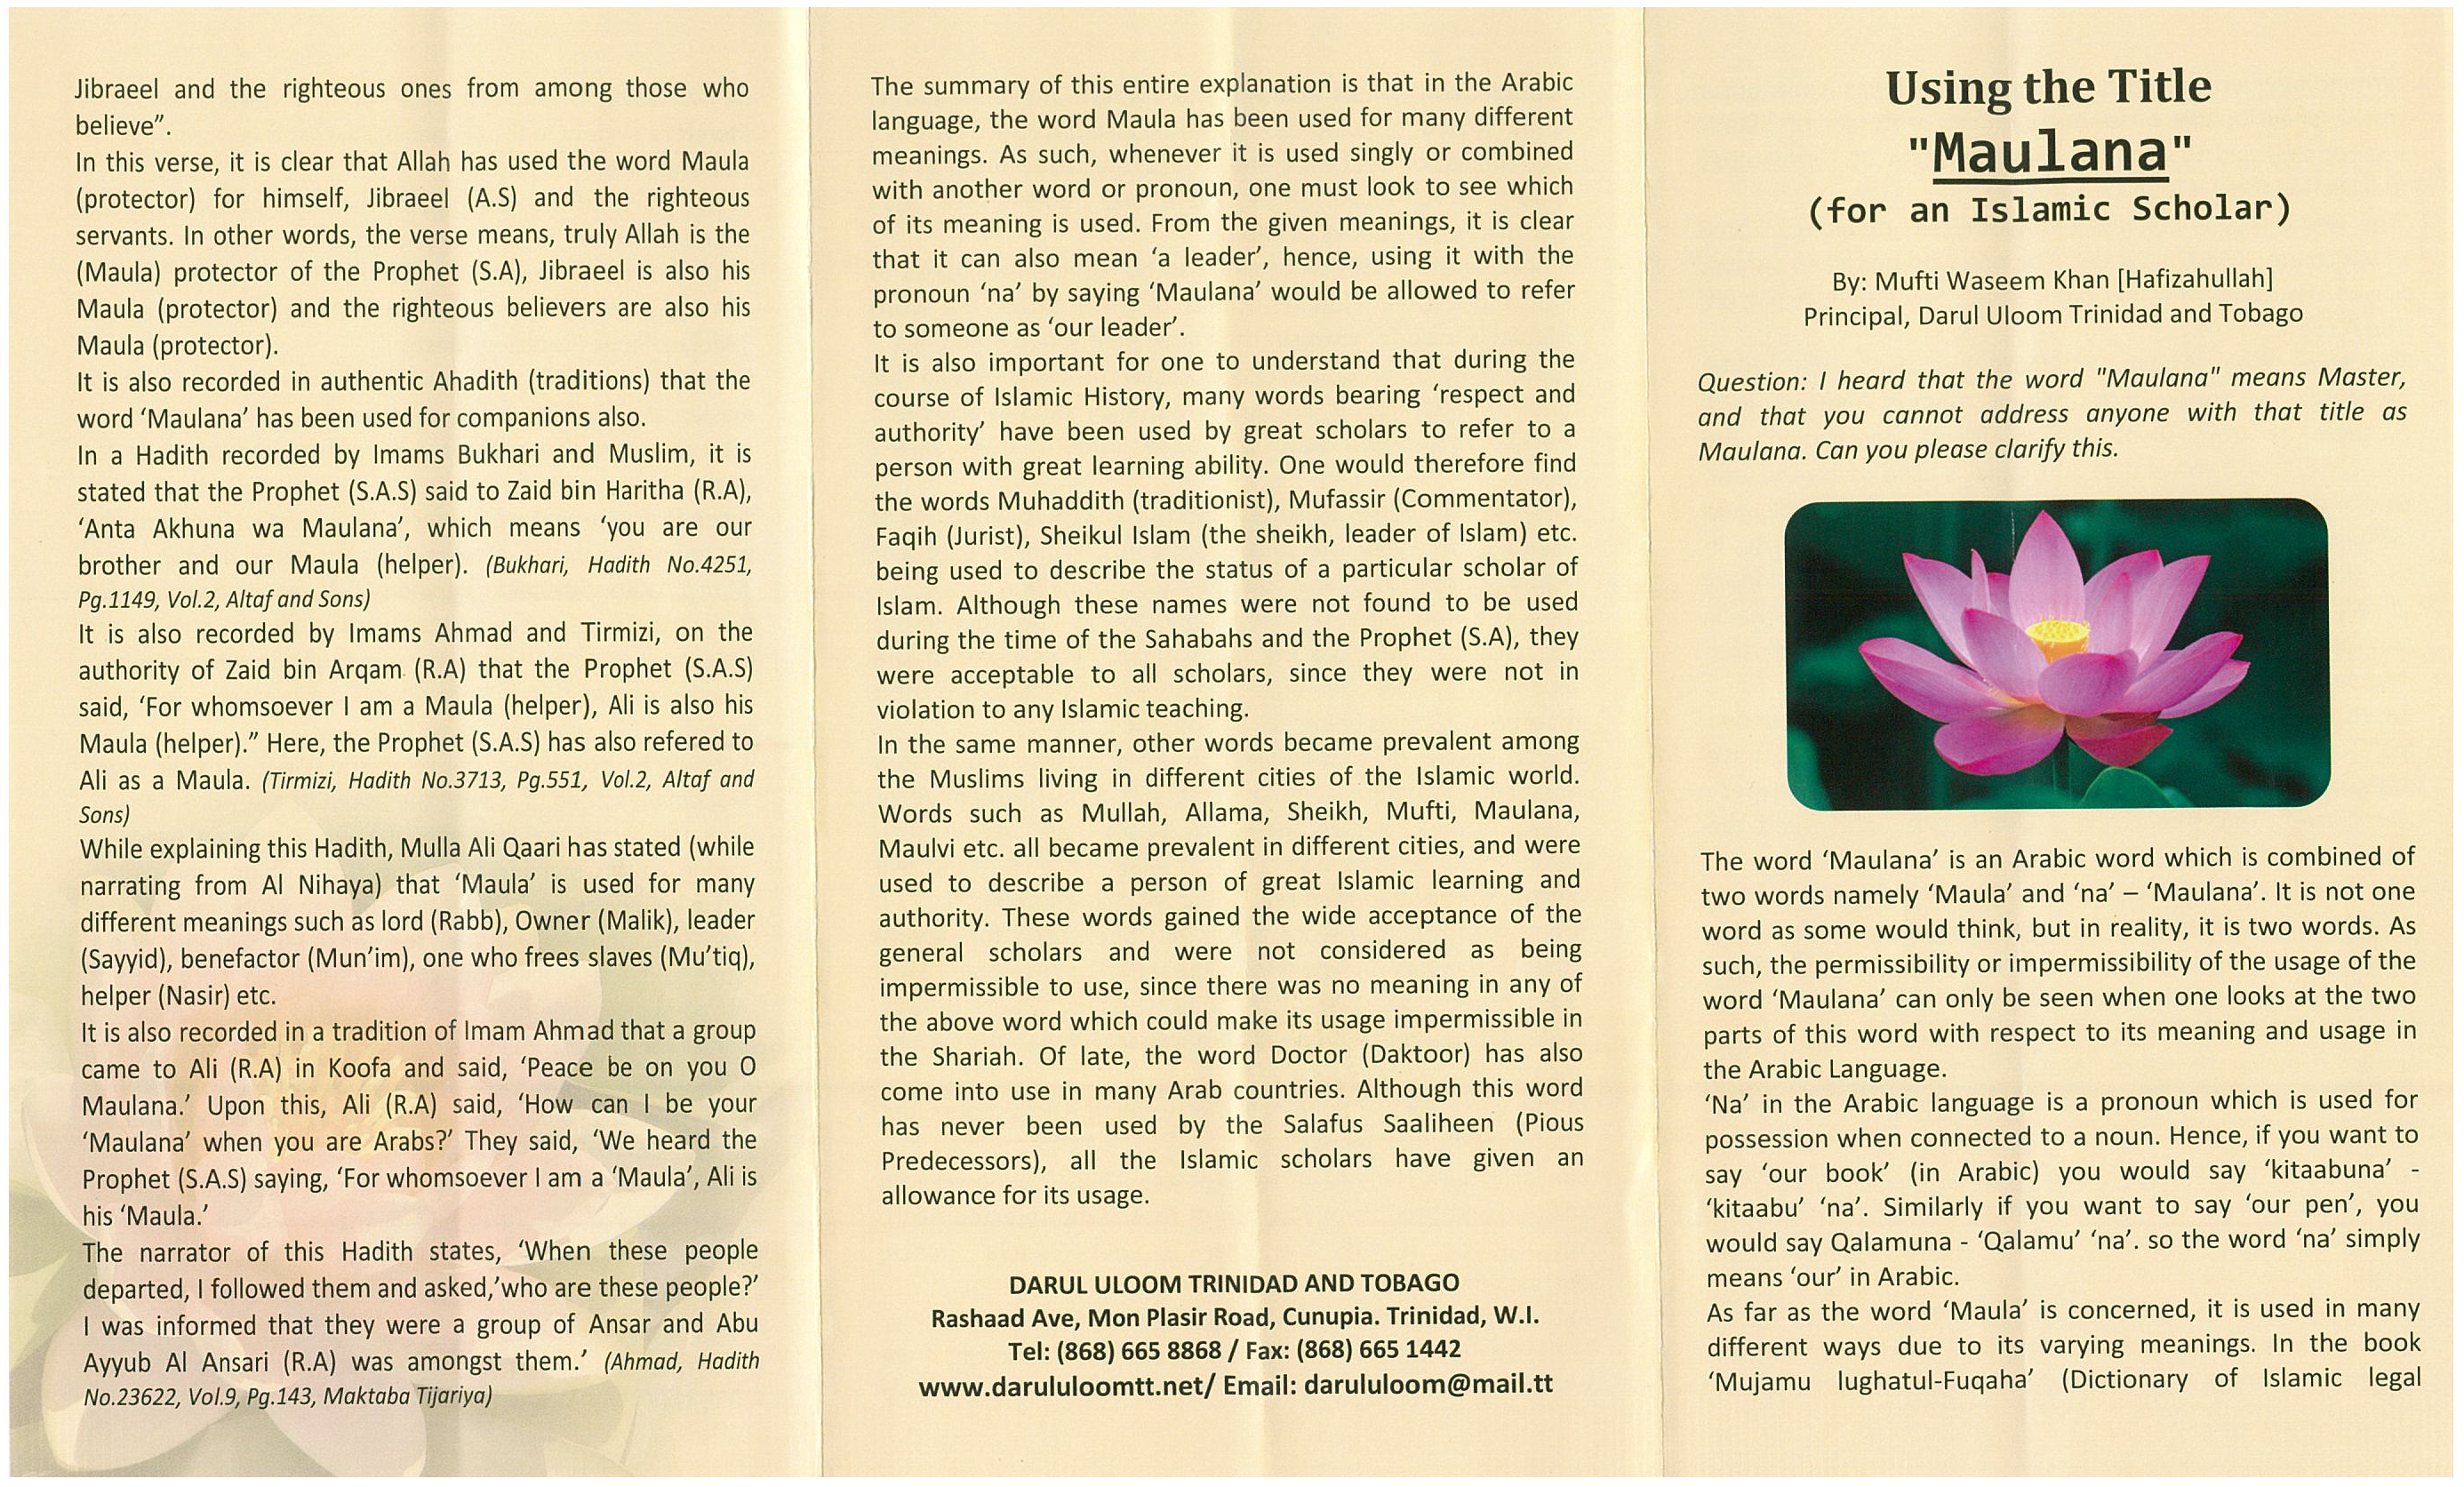 Using the Tittle 'Maulana' For An Islamic Scholar (Pamphlet)